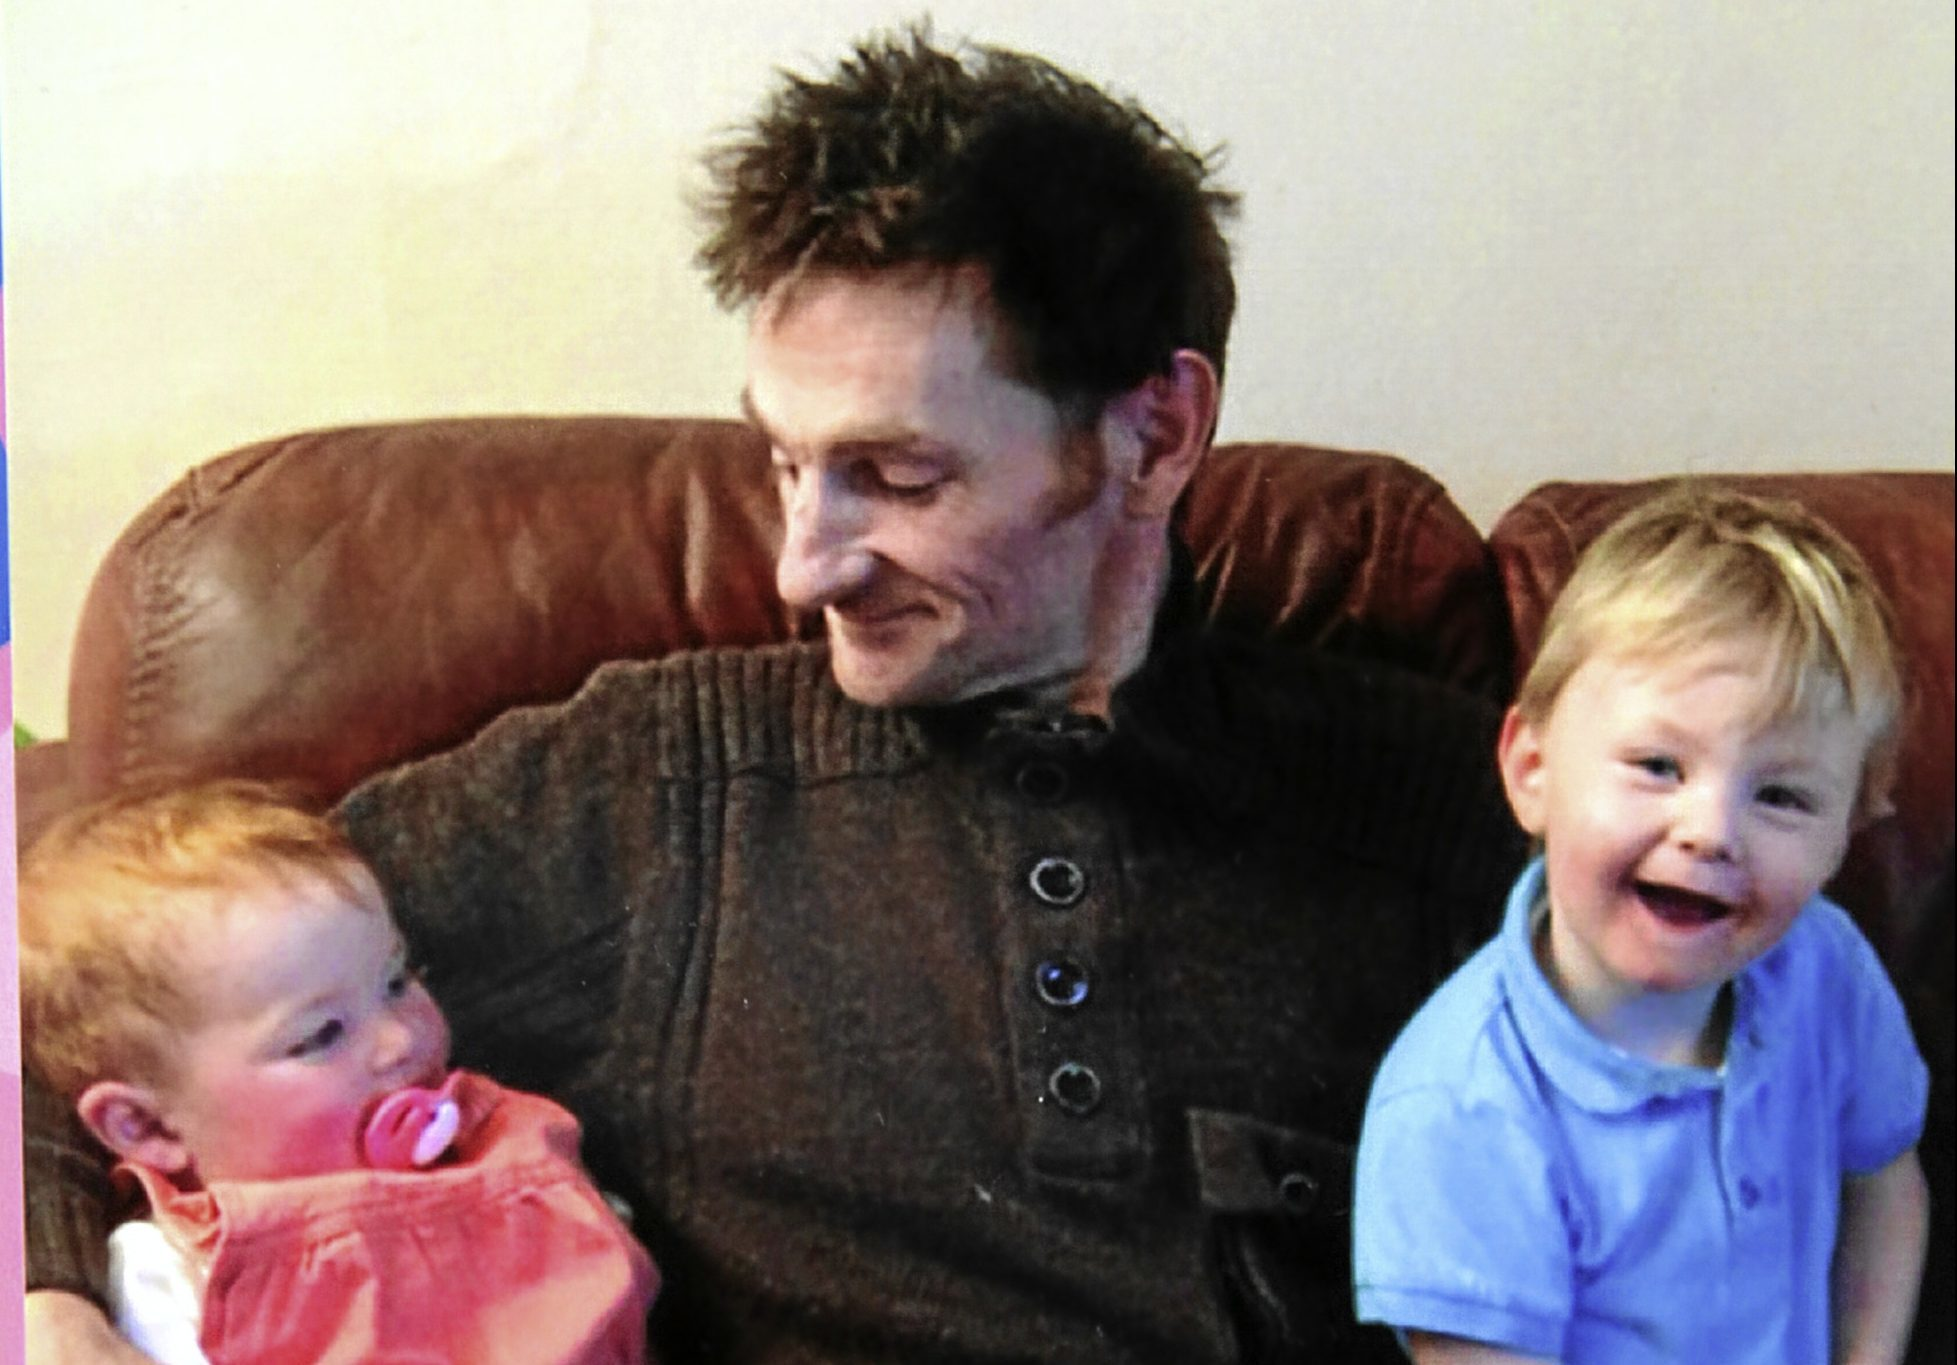 Bruce Candy, who died from cancer after developing stomach pains, with his children Amelia and Oliver.